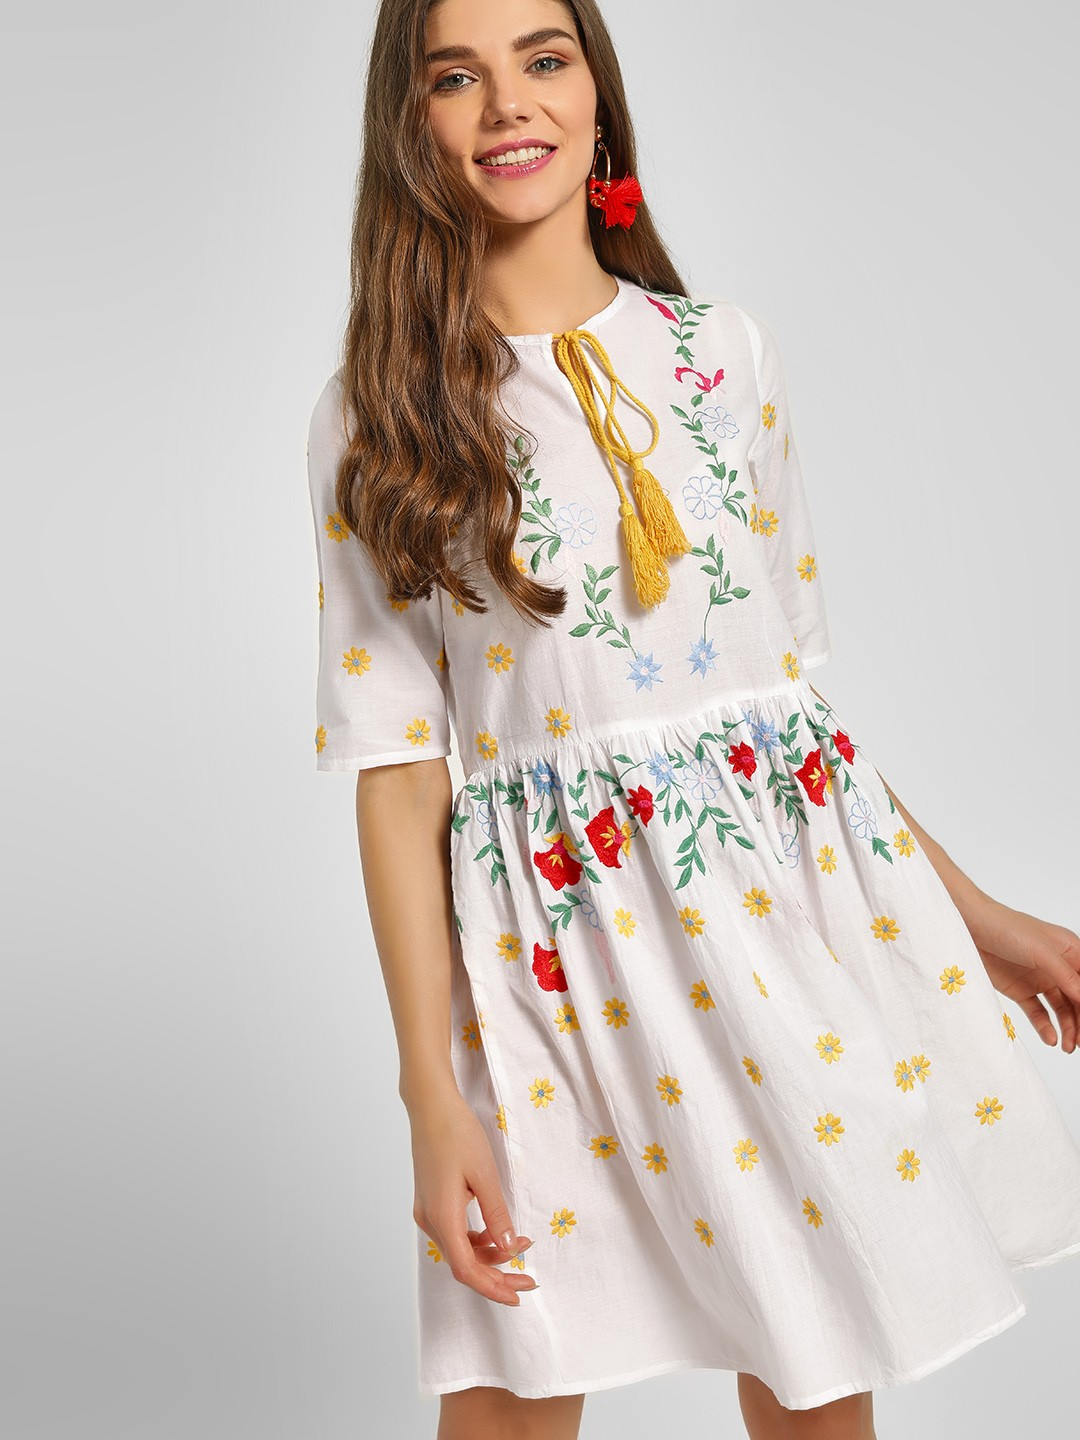 KOOVS White Floral Embroidered Shift Dress 1